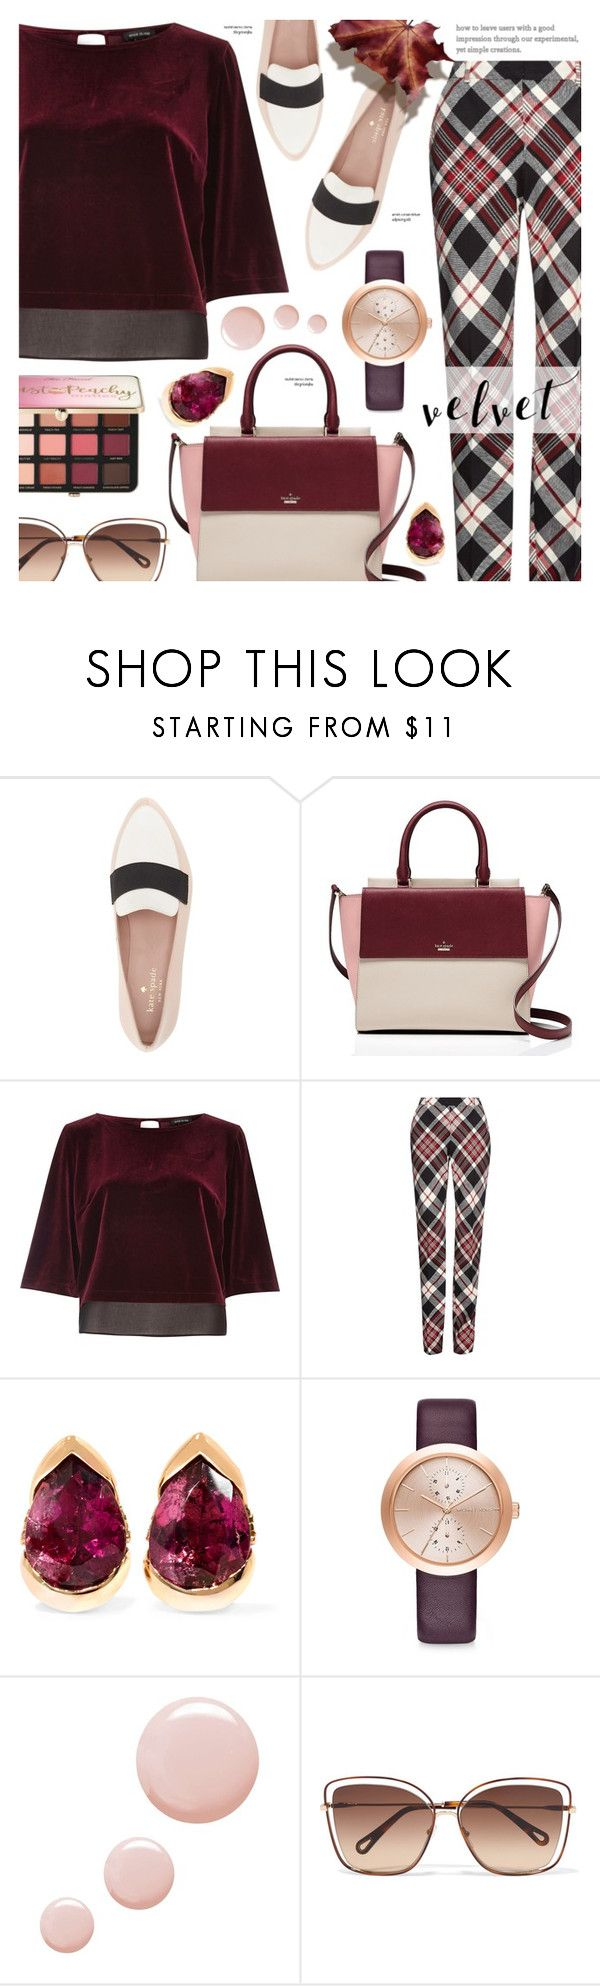 """""""Velvet trend - Work wear"""" by cly88 ❤ liked on Polyvore featuring Kate Spade, River Island, Alexander McQueen, Fernando Jorge, Michael Kors, Topshop, Chloé and Sephora Collection"""